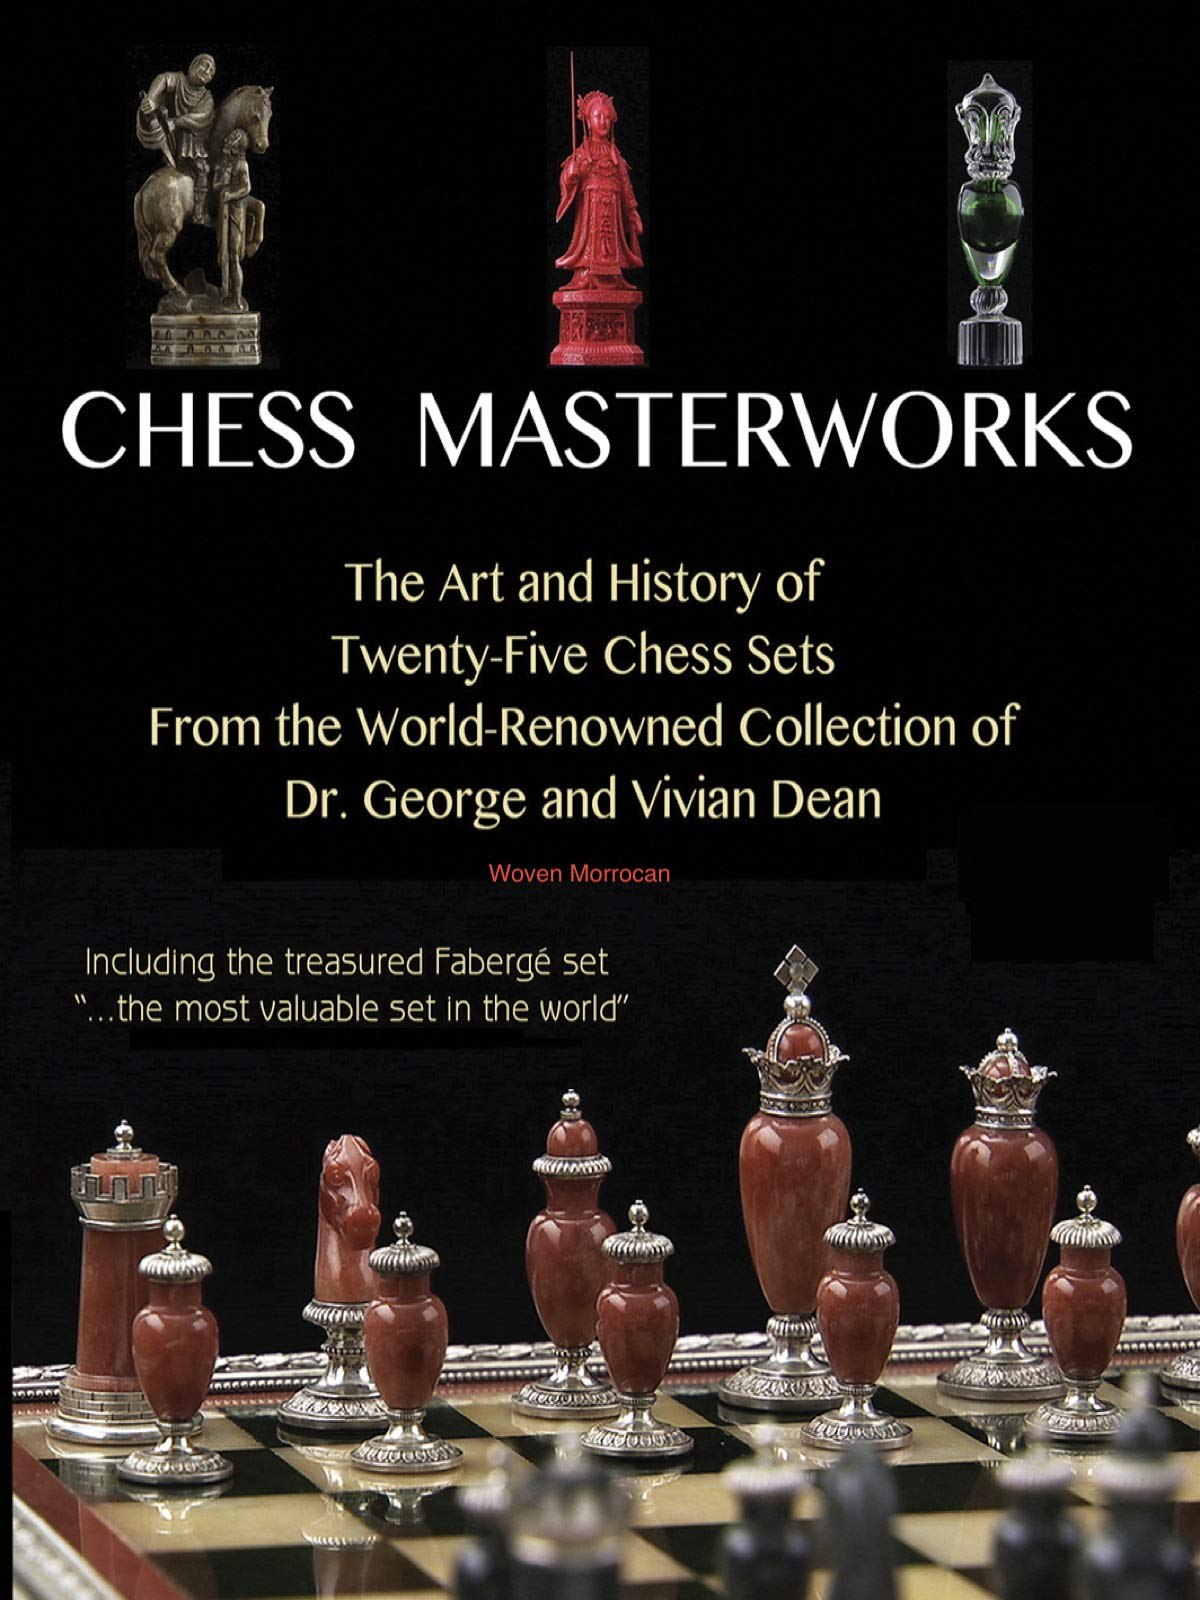 Chess Masterworks: Woven Morrocan